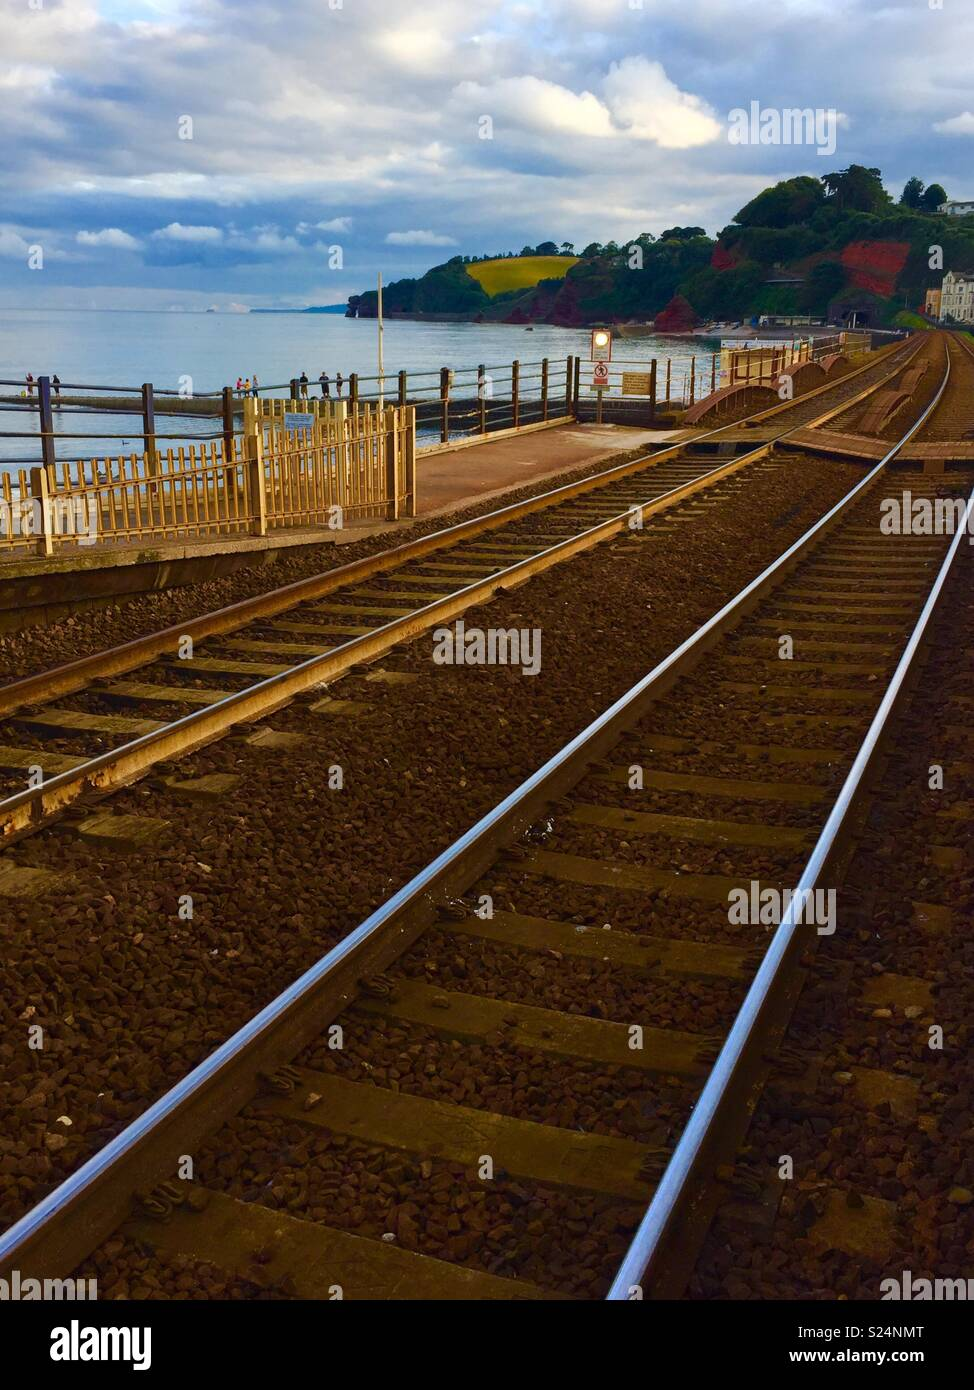 Railway line at Dawlish station looking towards Teignmouth. - Stock Image